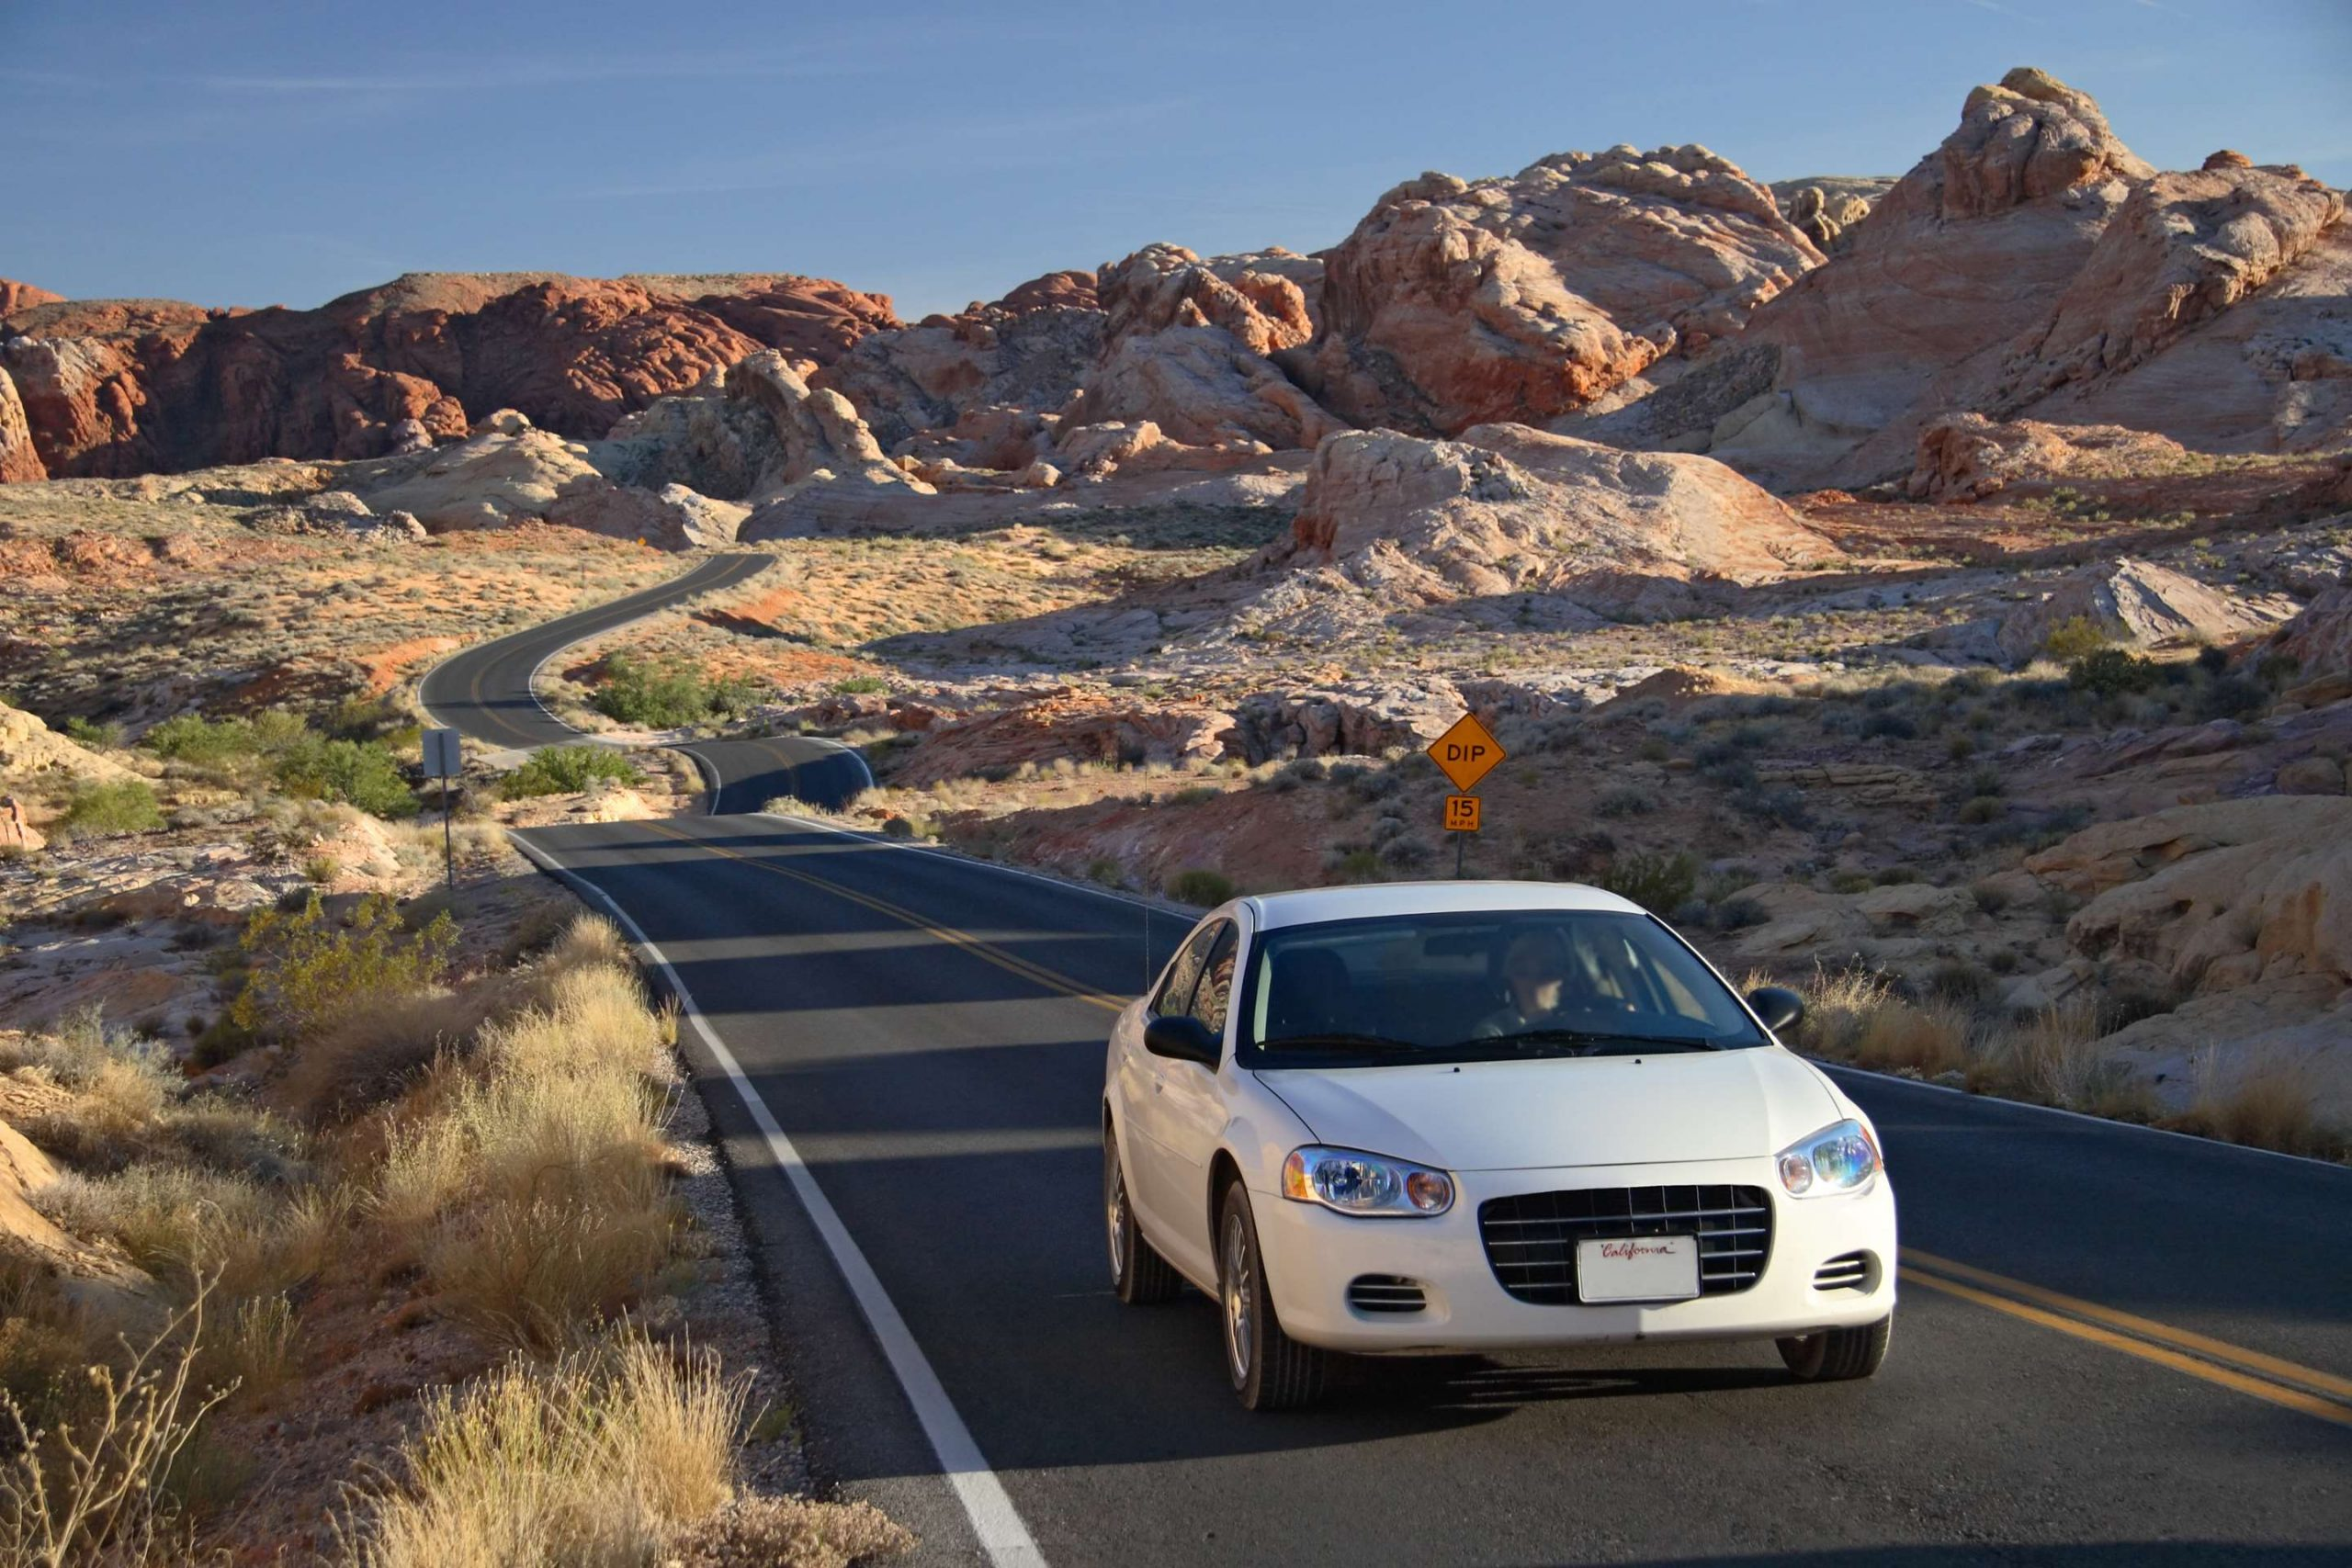 High-end Car Rental – Go For Luxurious And Independent Traveling